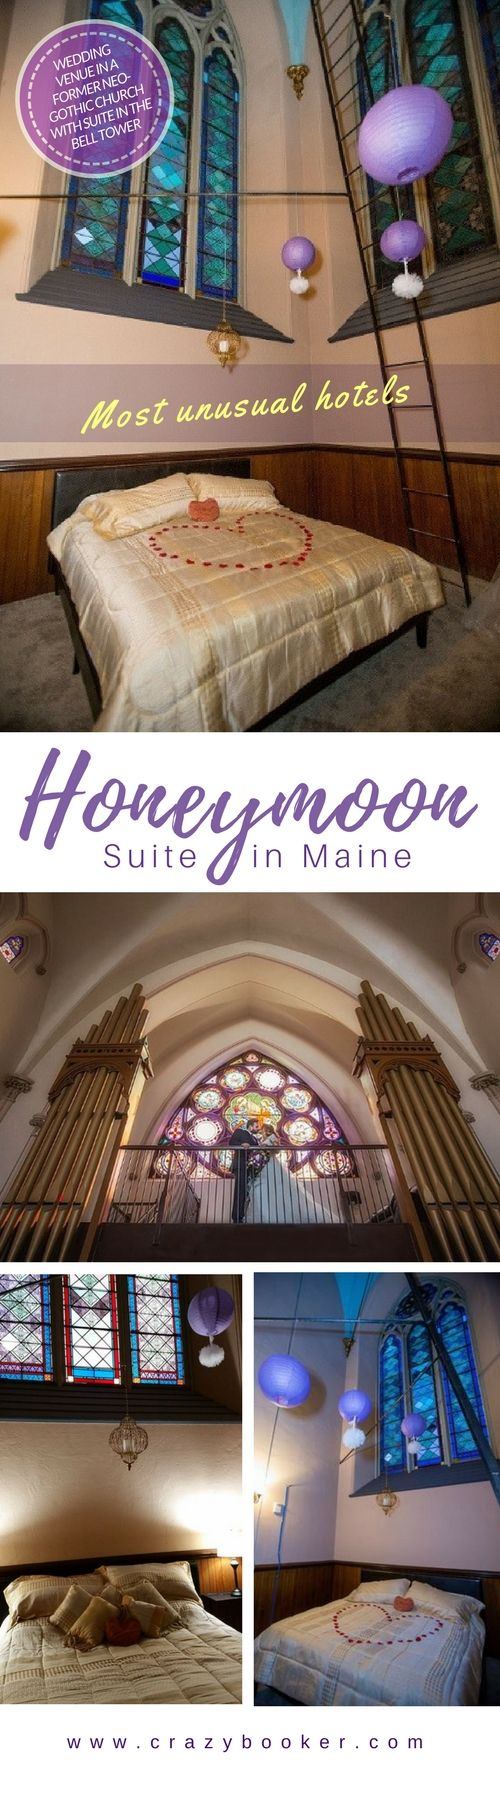 Unique Honeymoon Suite in a bell tower | This wedding venue in a former neogothic church in Maine is one of America's most spectacular wedding locations | Highlight is an uncredible wedding suite with private jacuzzi in the churchtower #usa #honeymoon #wedding #hotel